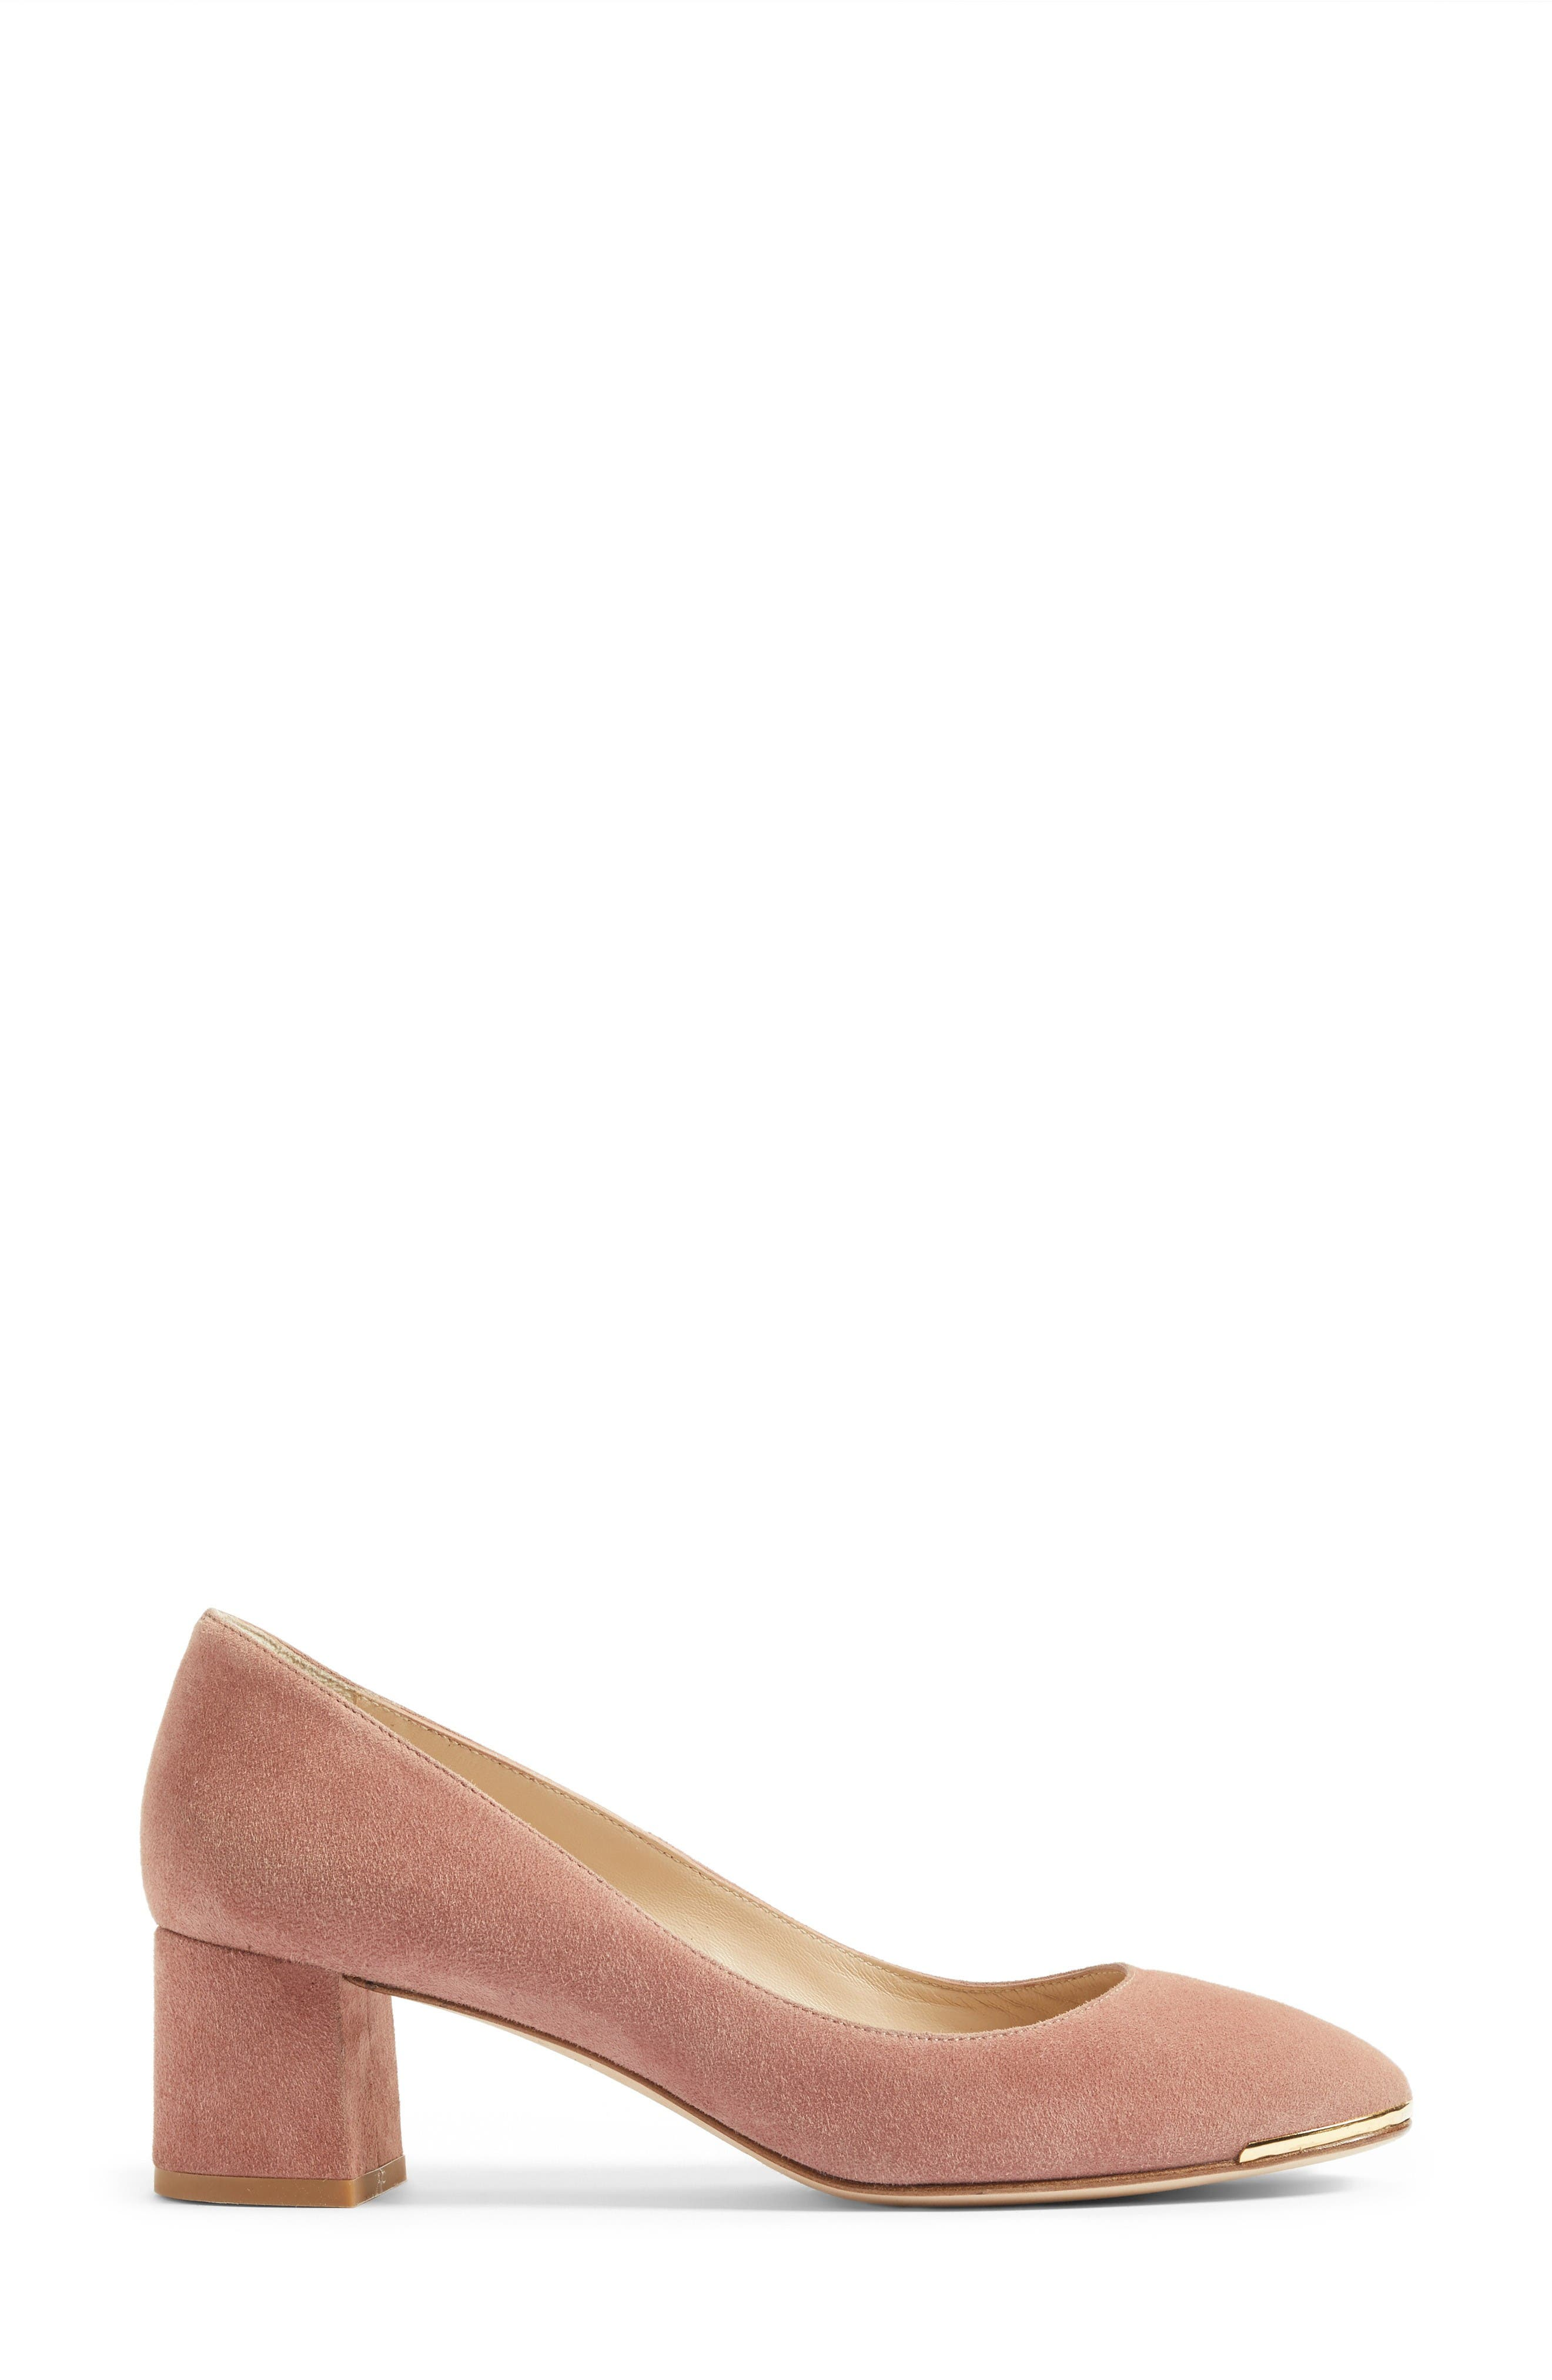 Clemence Pump,                             Alternate thumbnail 3, color,                             Pink/ Dark Pink